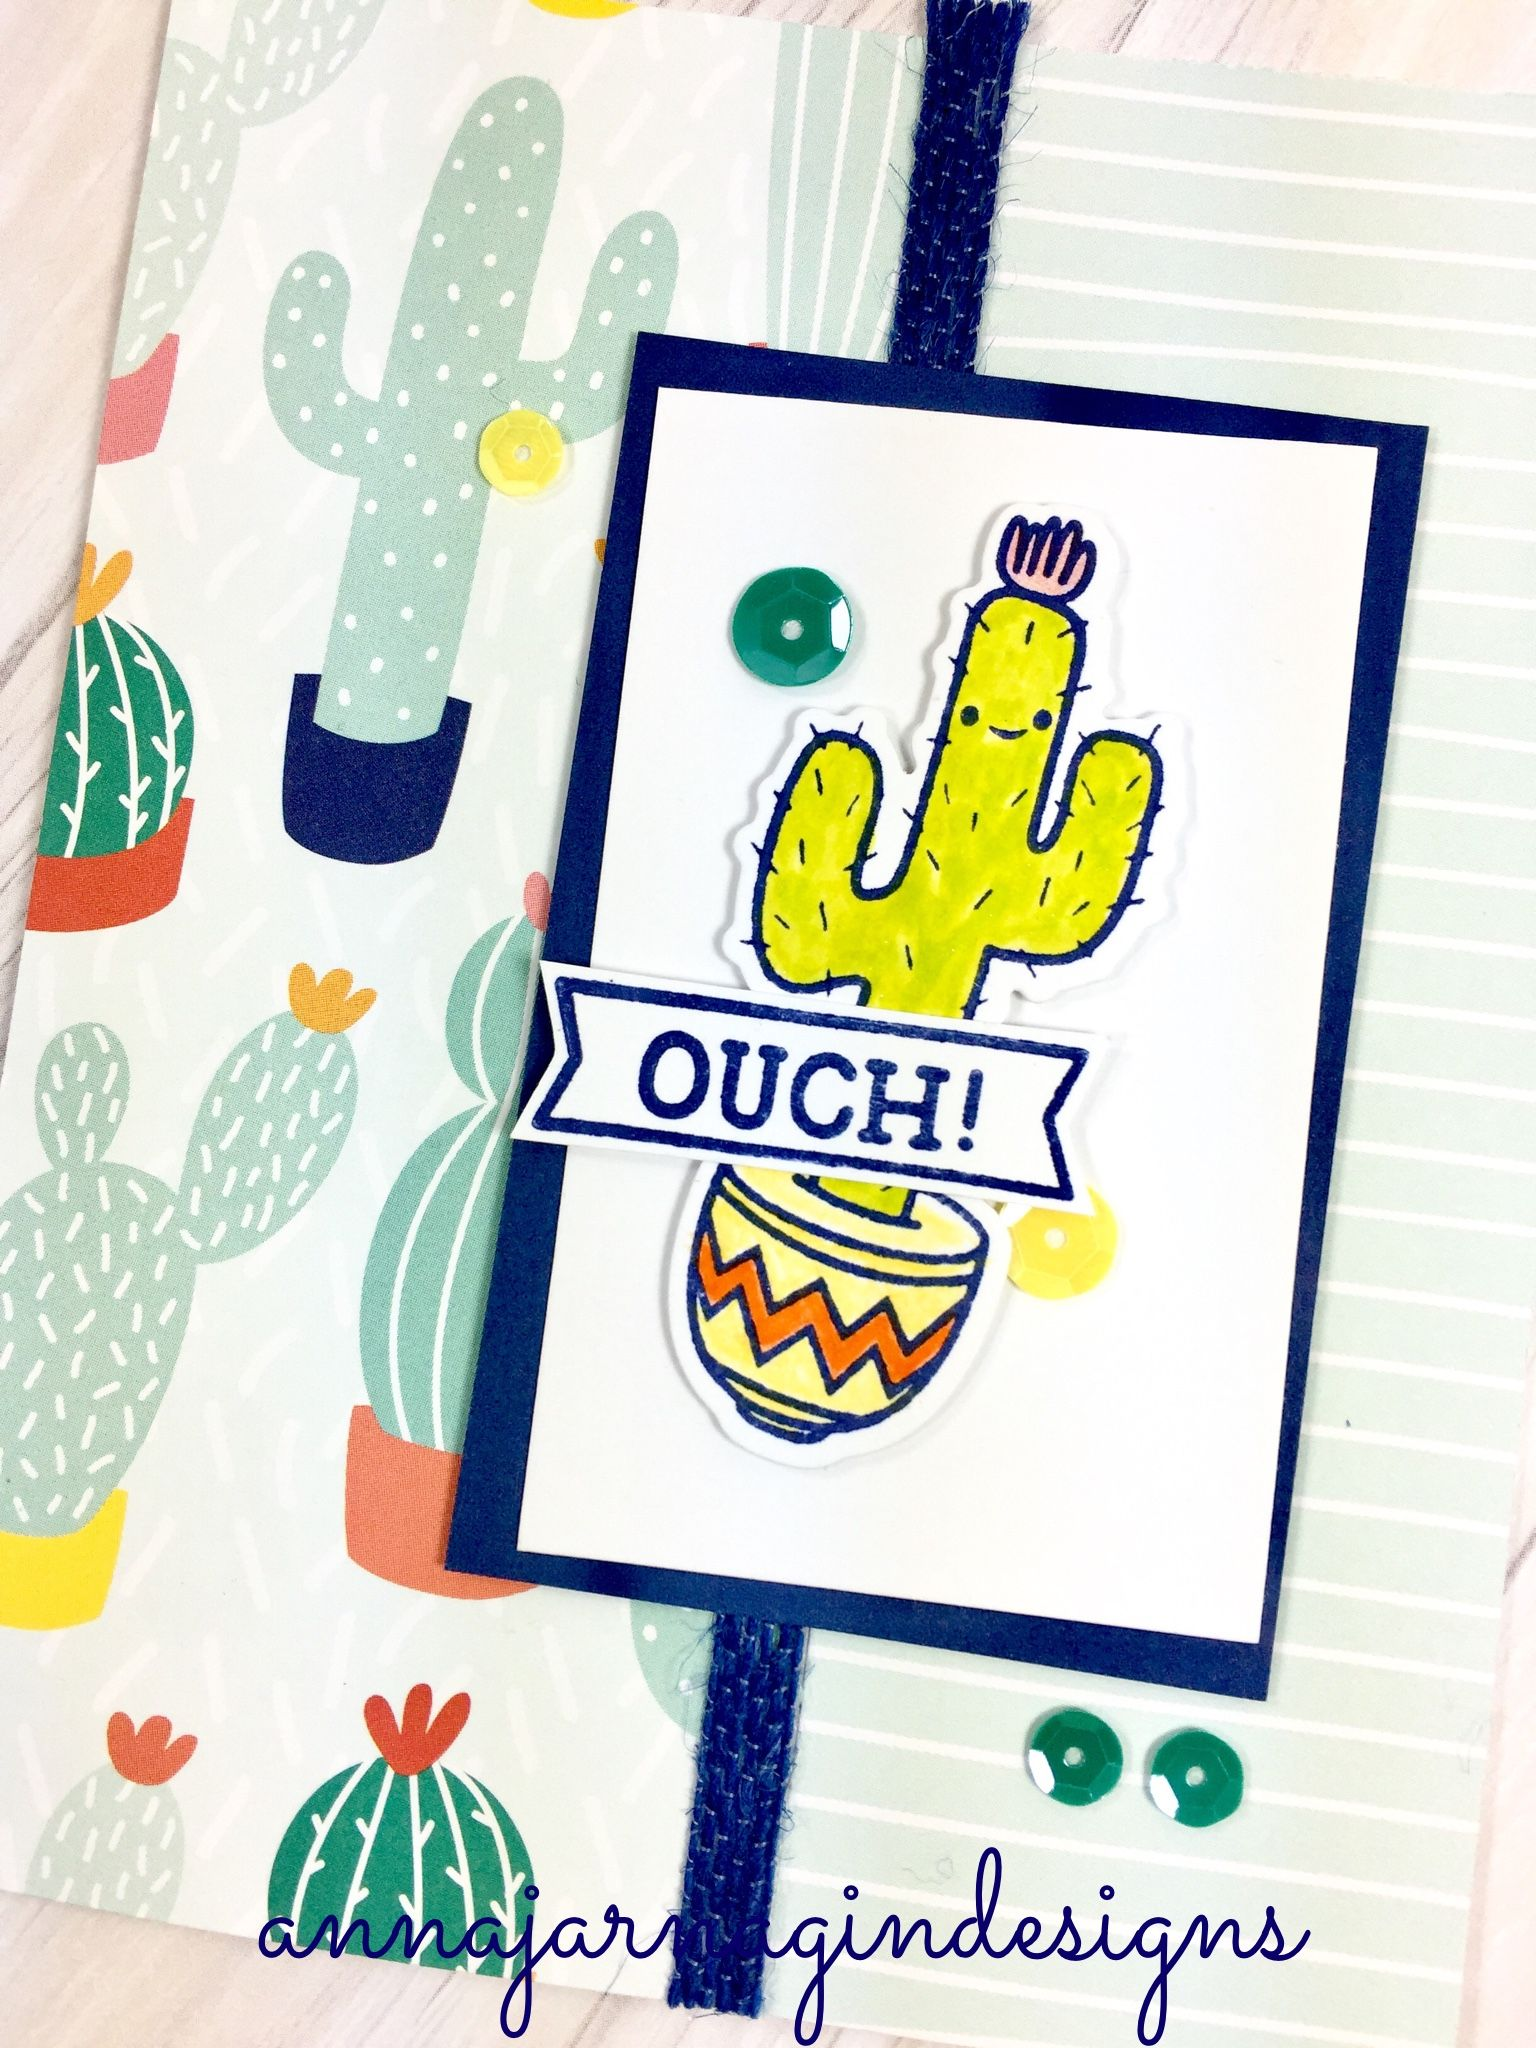 Crafted by Anna Jarnagin. Prickly Pear paper and embellishments by Close to My Heart.